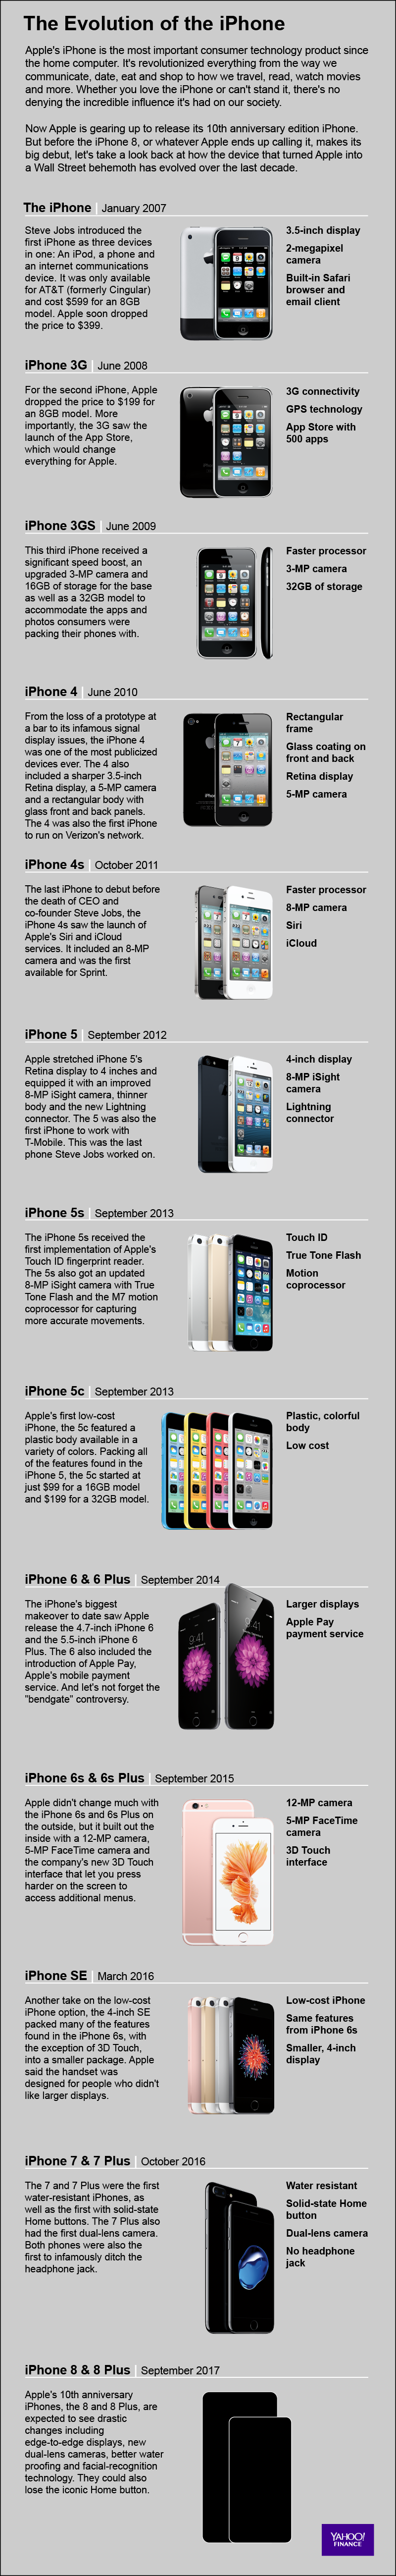 The iPhone has evolved significantly over the last decade. Credit: David Foster